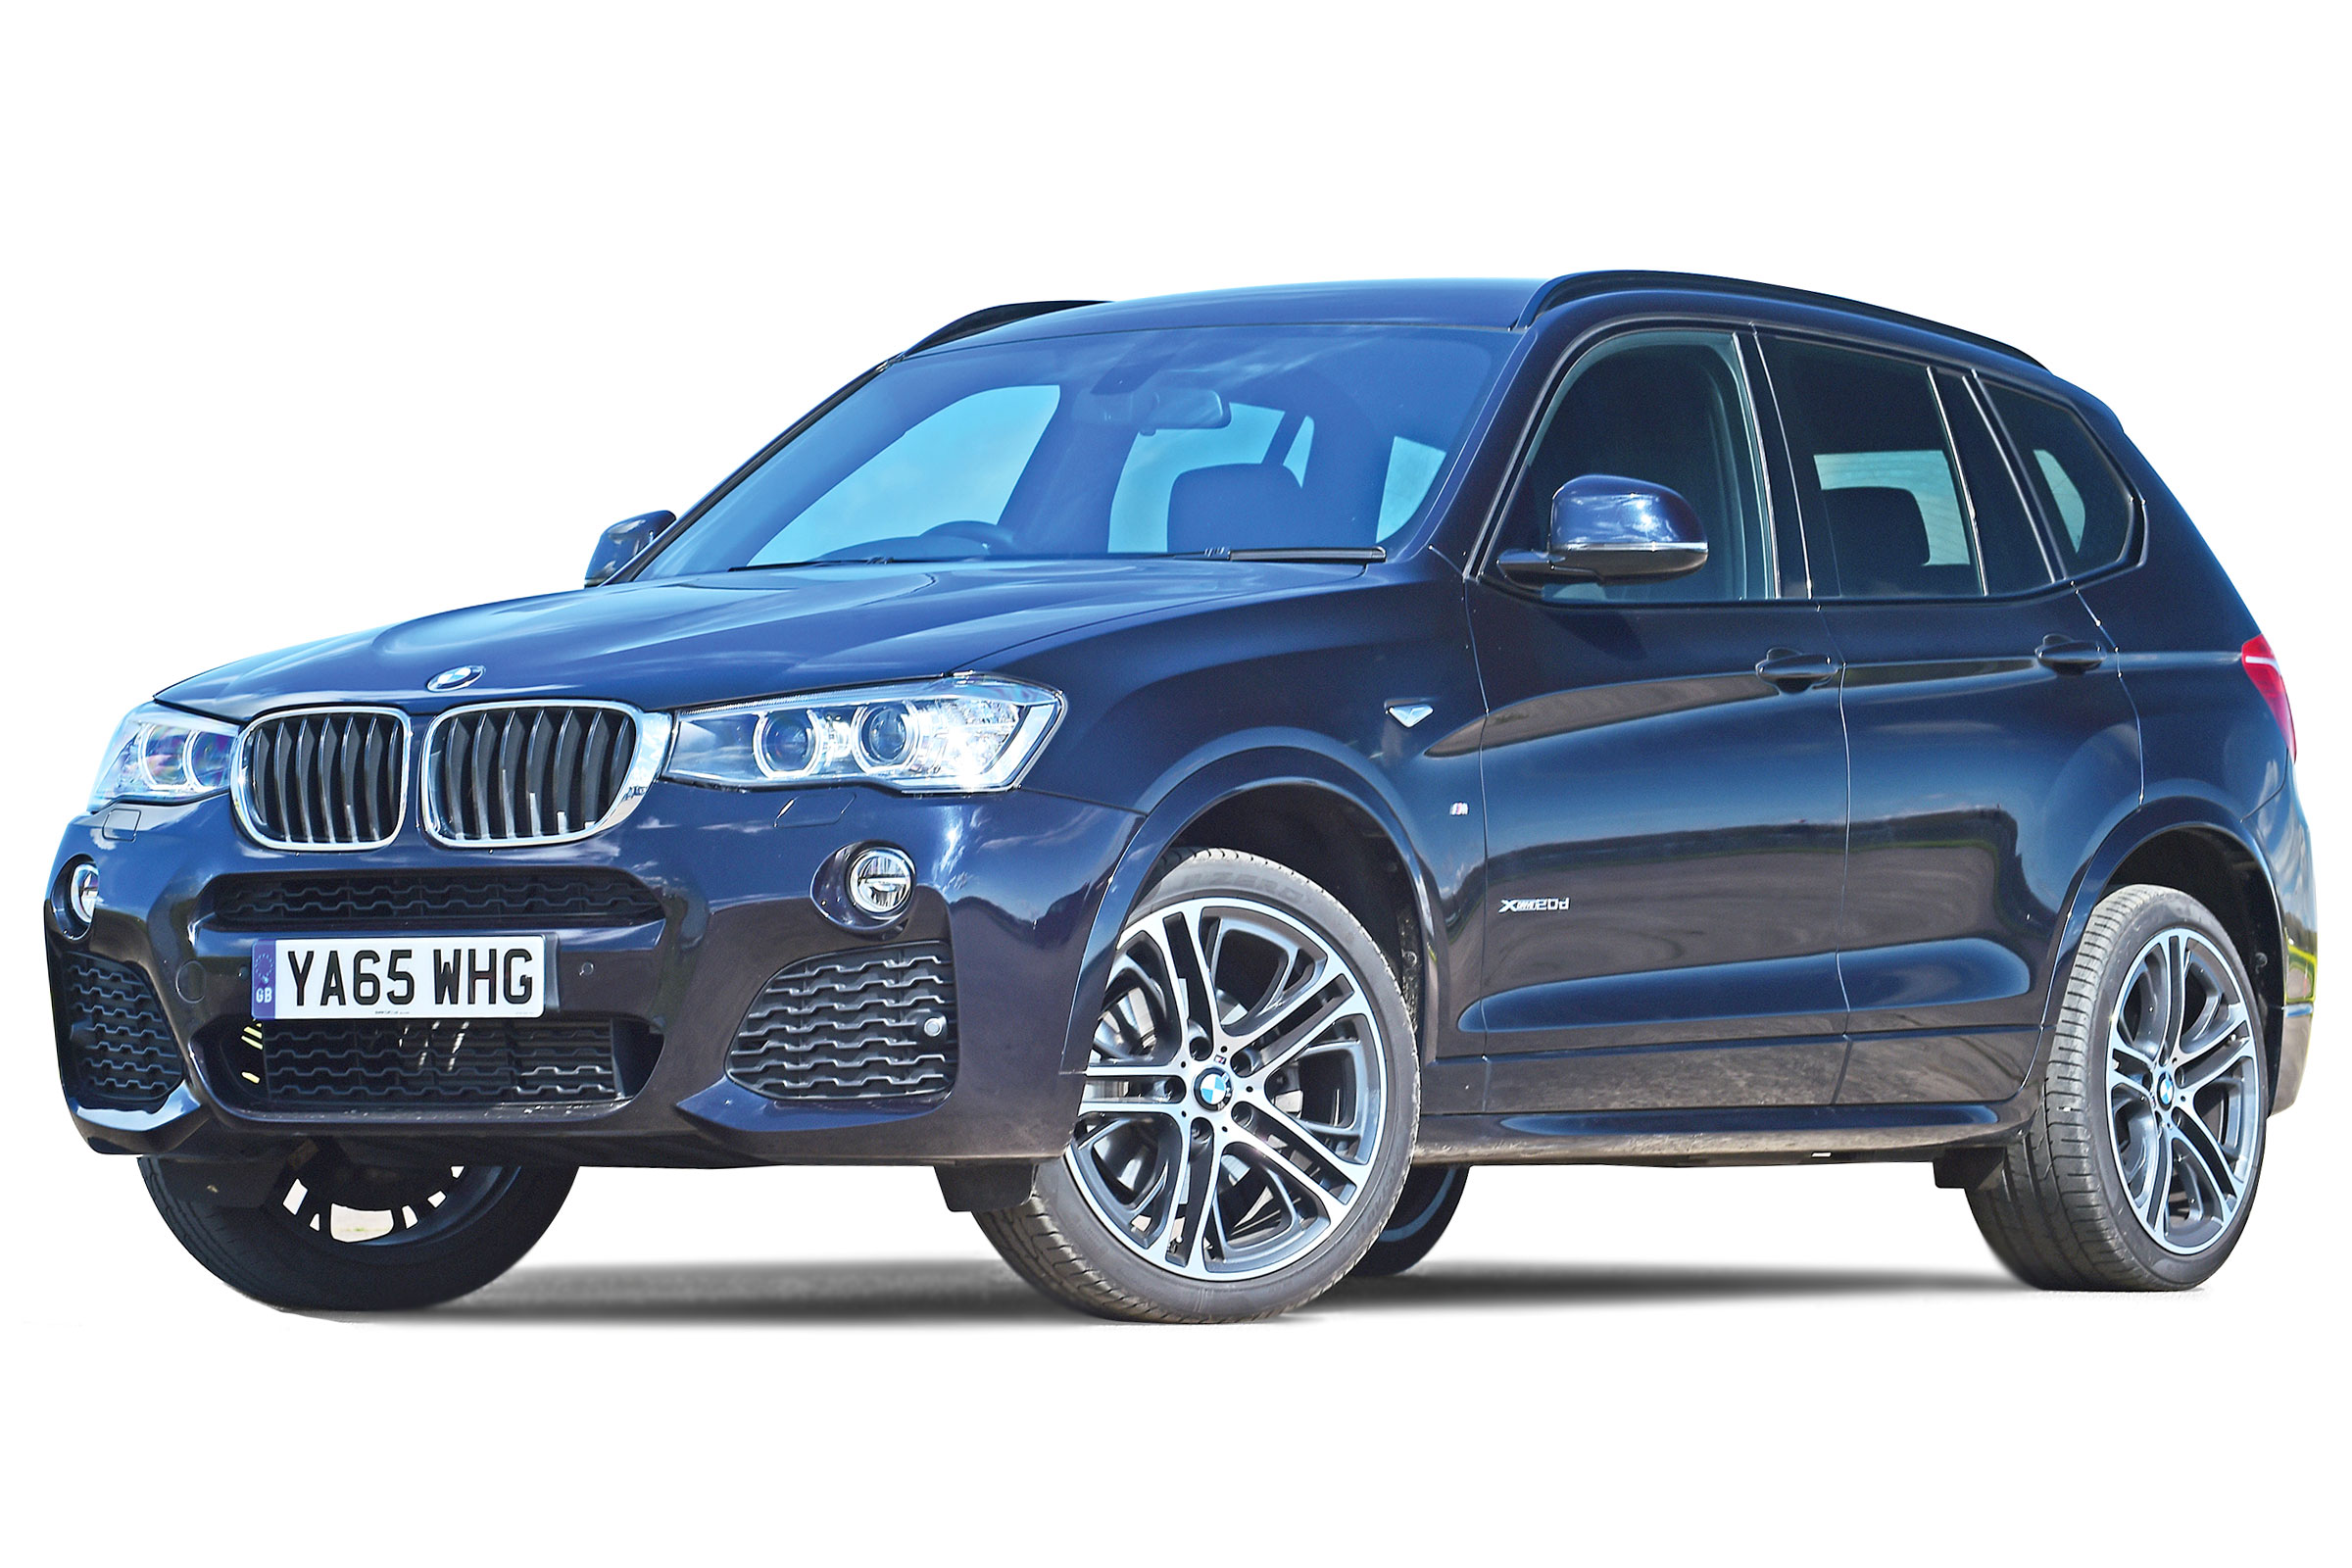 Bmw X3 Suv 2010 2017 Owner Reviews Mpg Problems Reliability Carbuyer